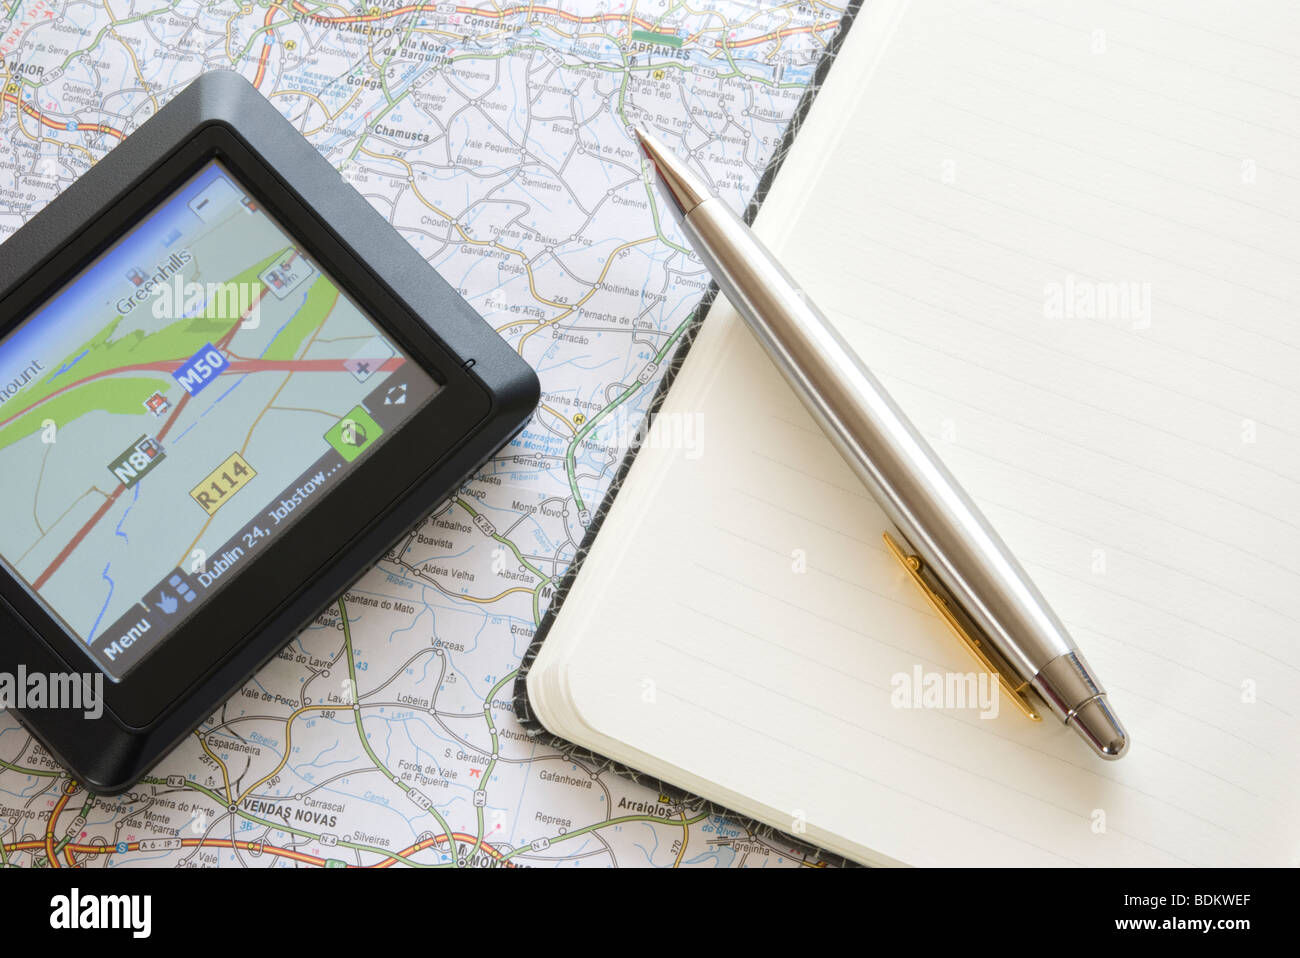 GPS global positioning system device arranged with map - Stock Image